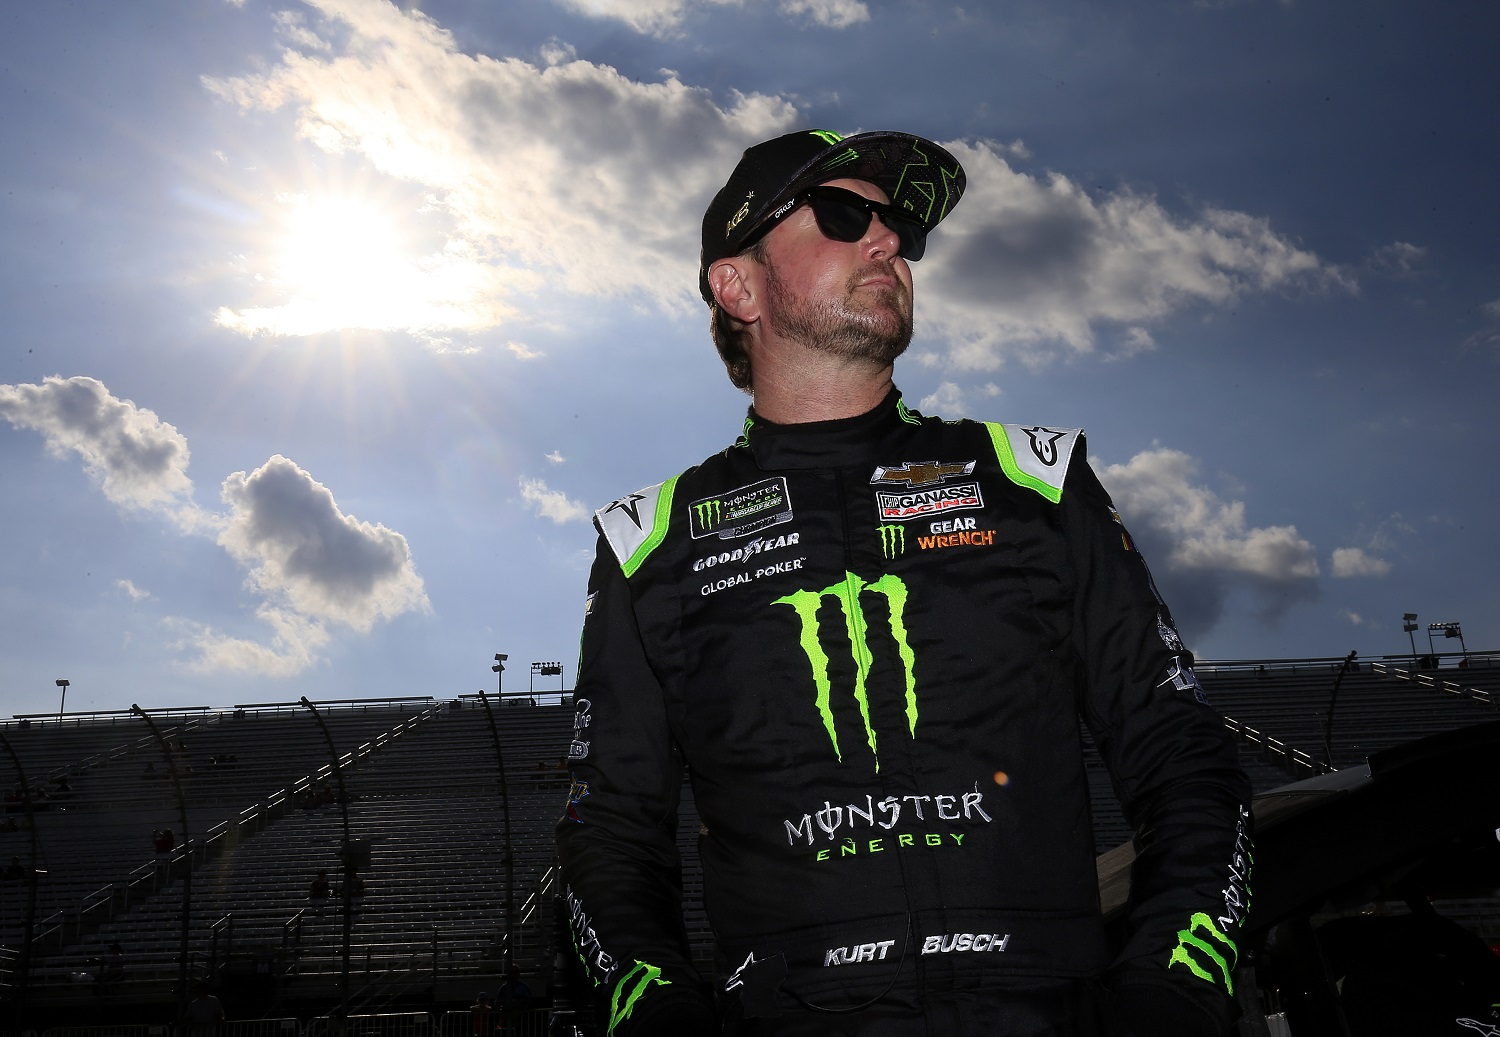 Kurt Busch joined Chip Ganassi Racing in 2019 but does not have a contract for next season. | Chris Trotman/Getty Images